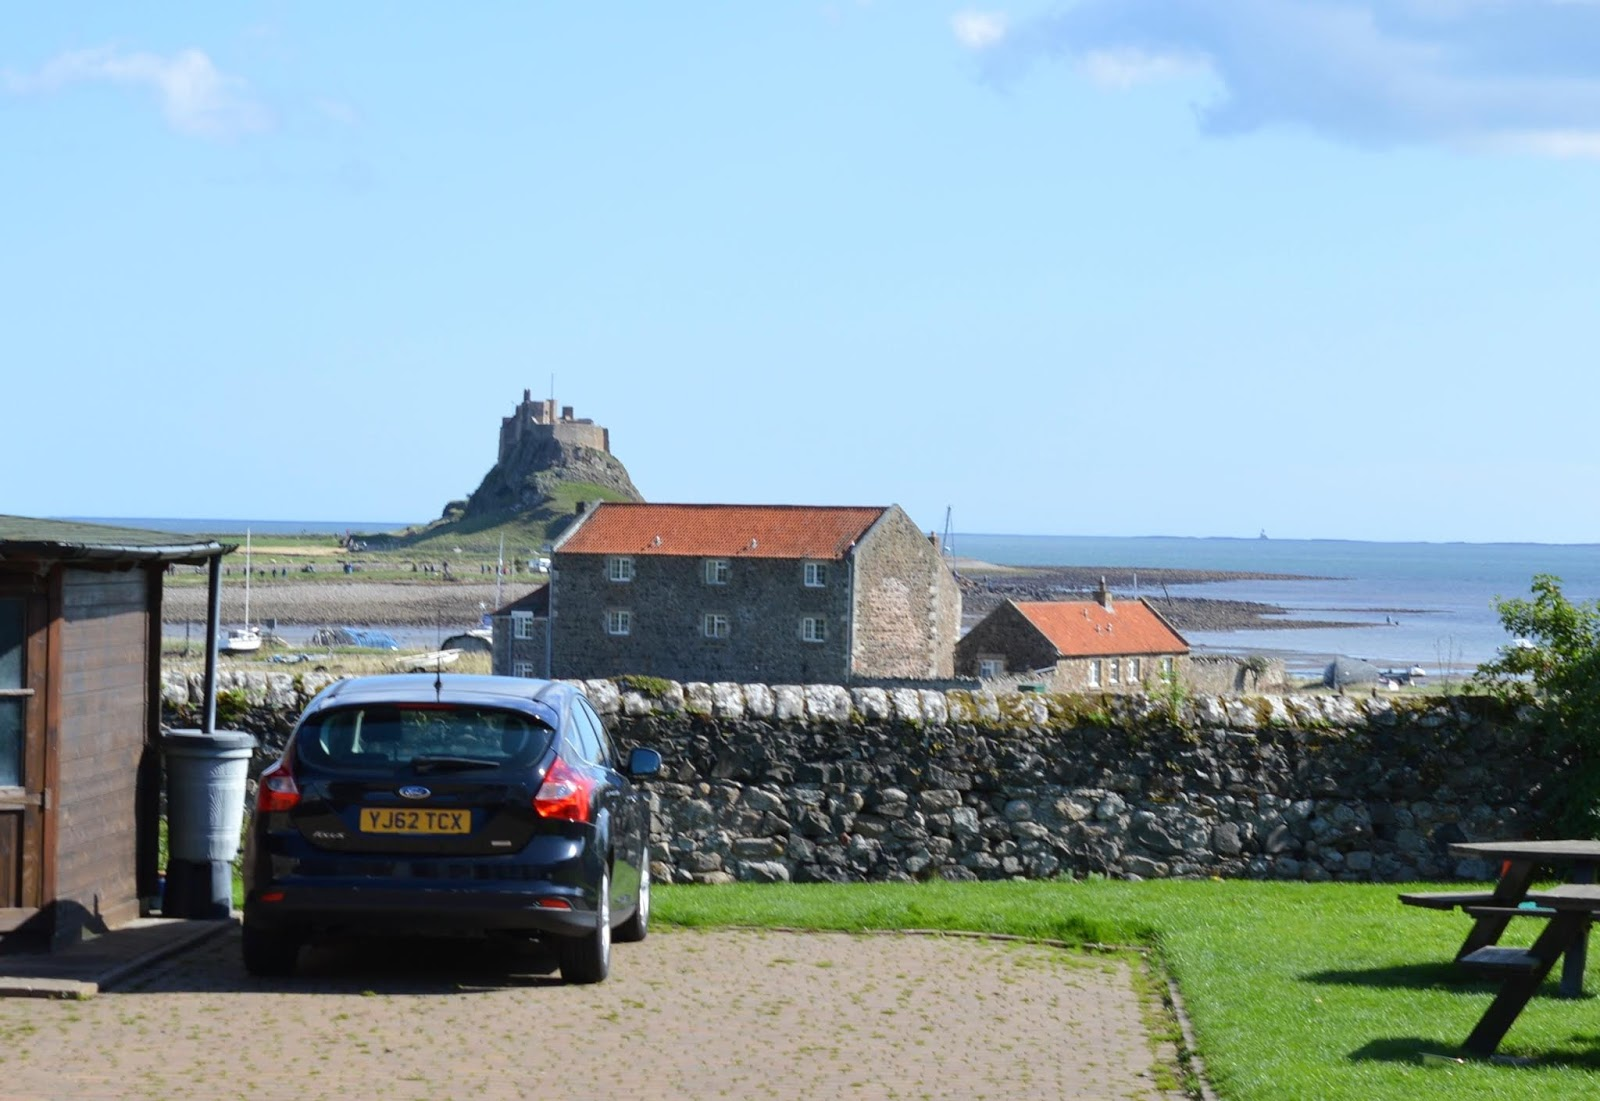 The Holy Island of Lindisfarne, Northumberland - what to see and do during a half day visit - view from the manor house hotel beer garden